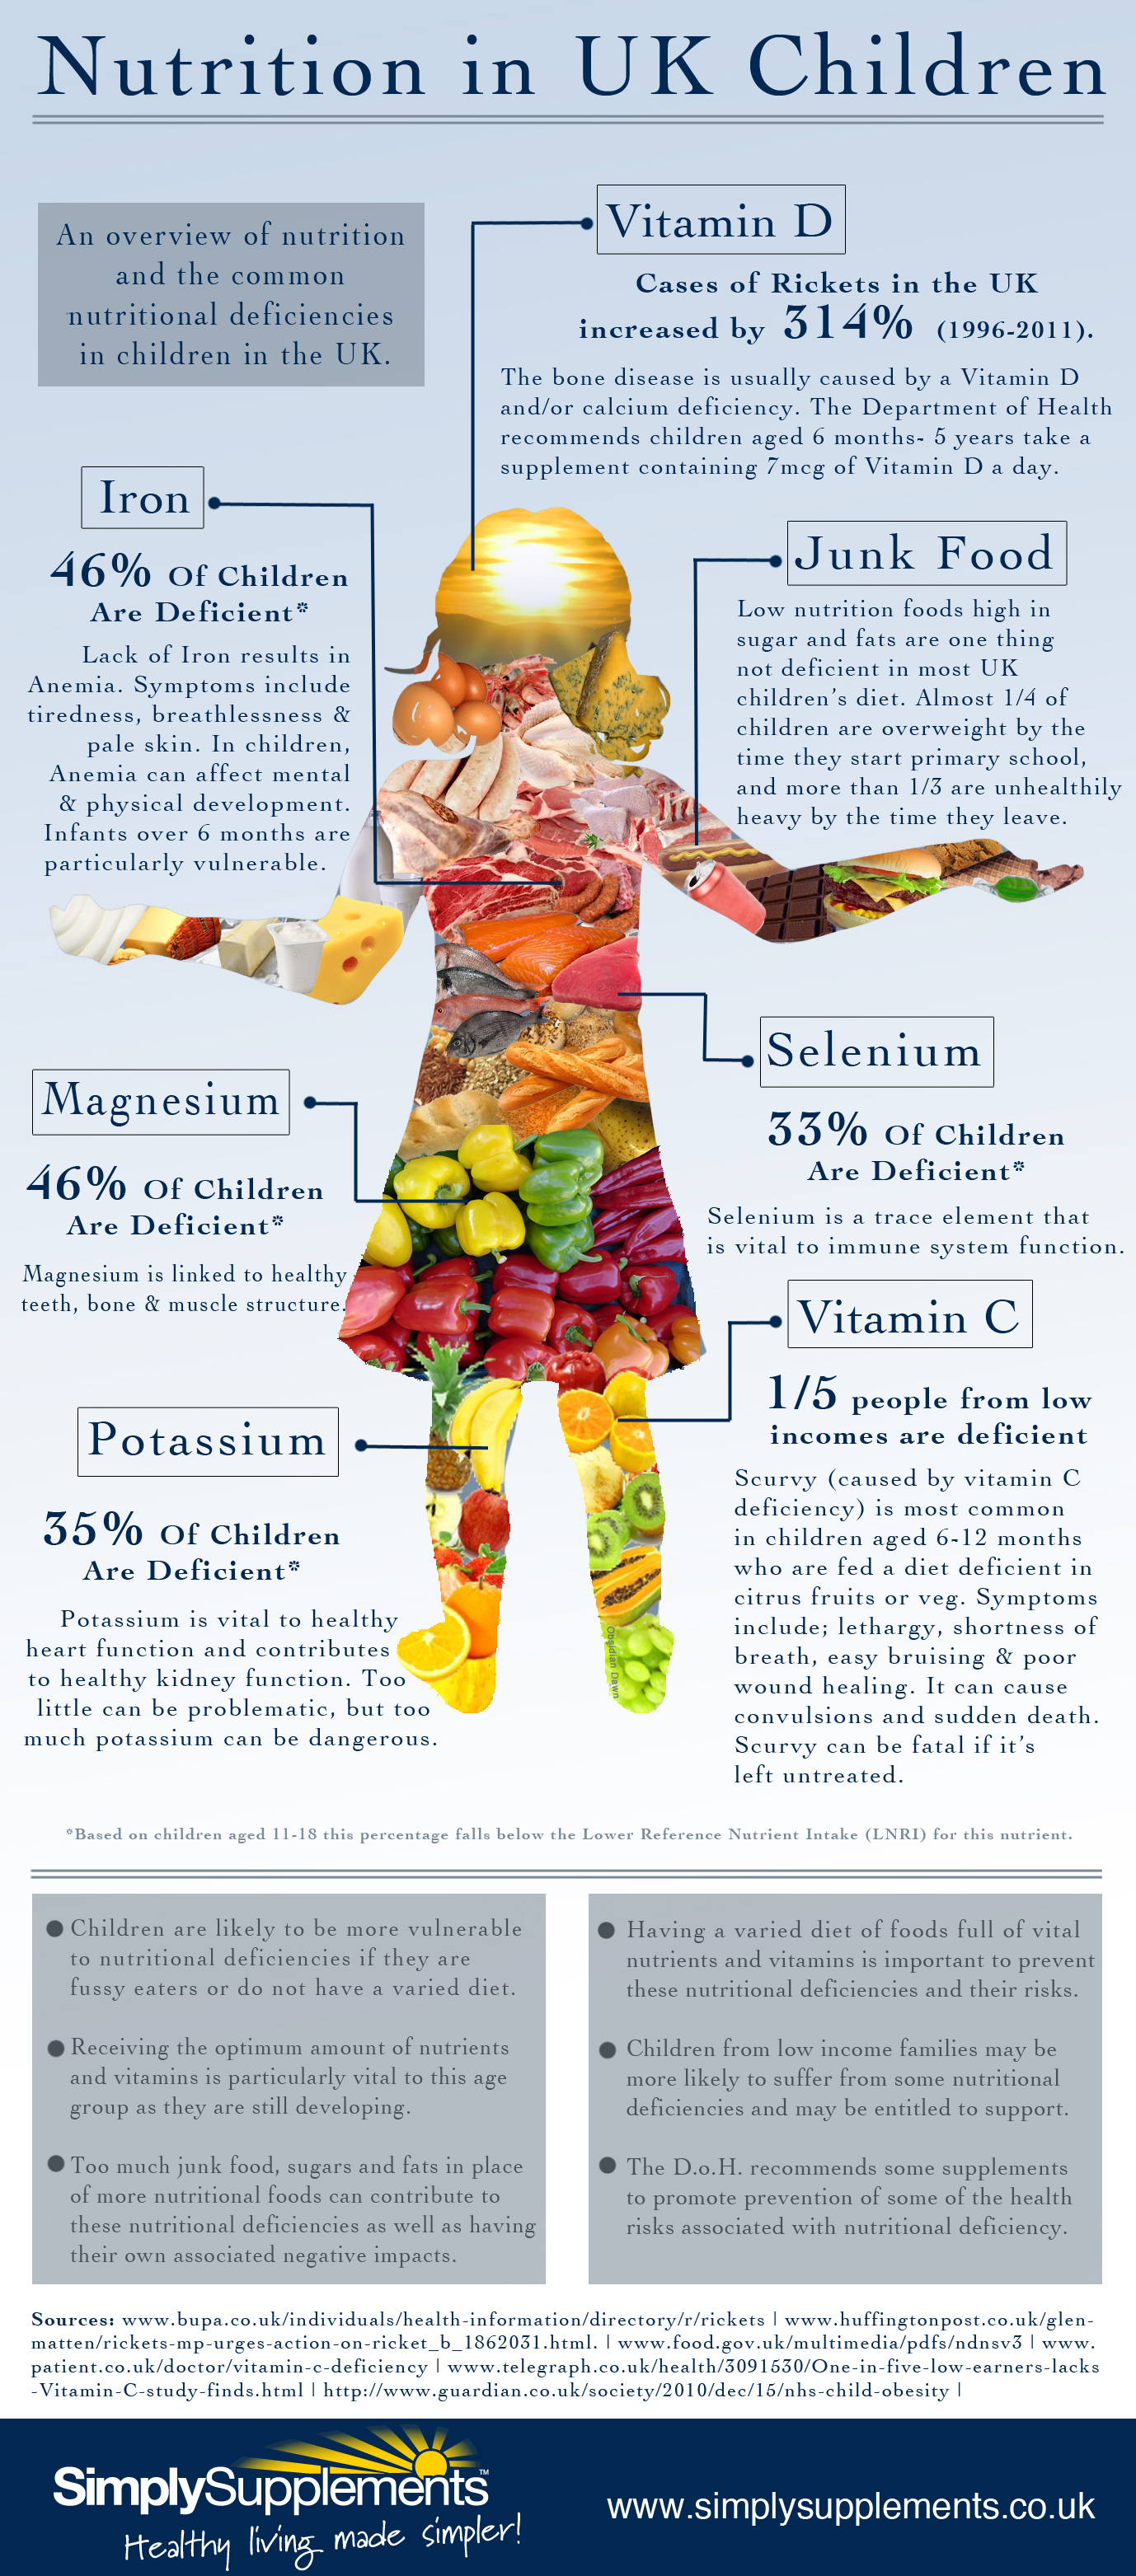 Nutrition in UK Children | Visual.ly